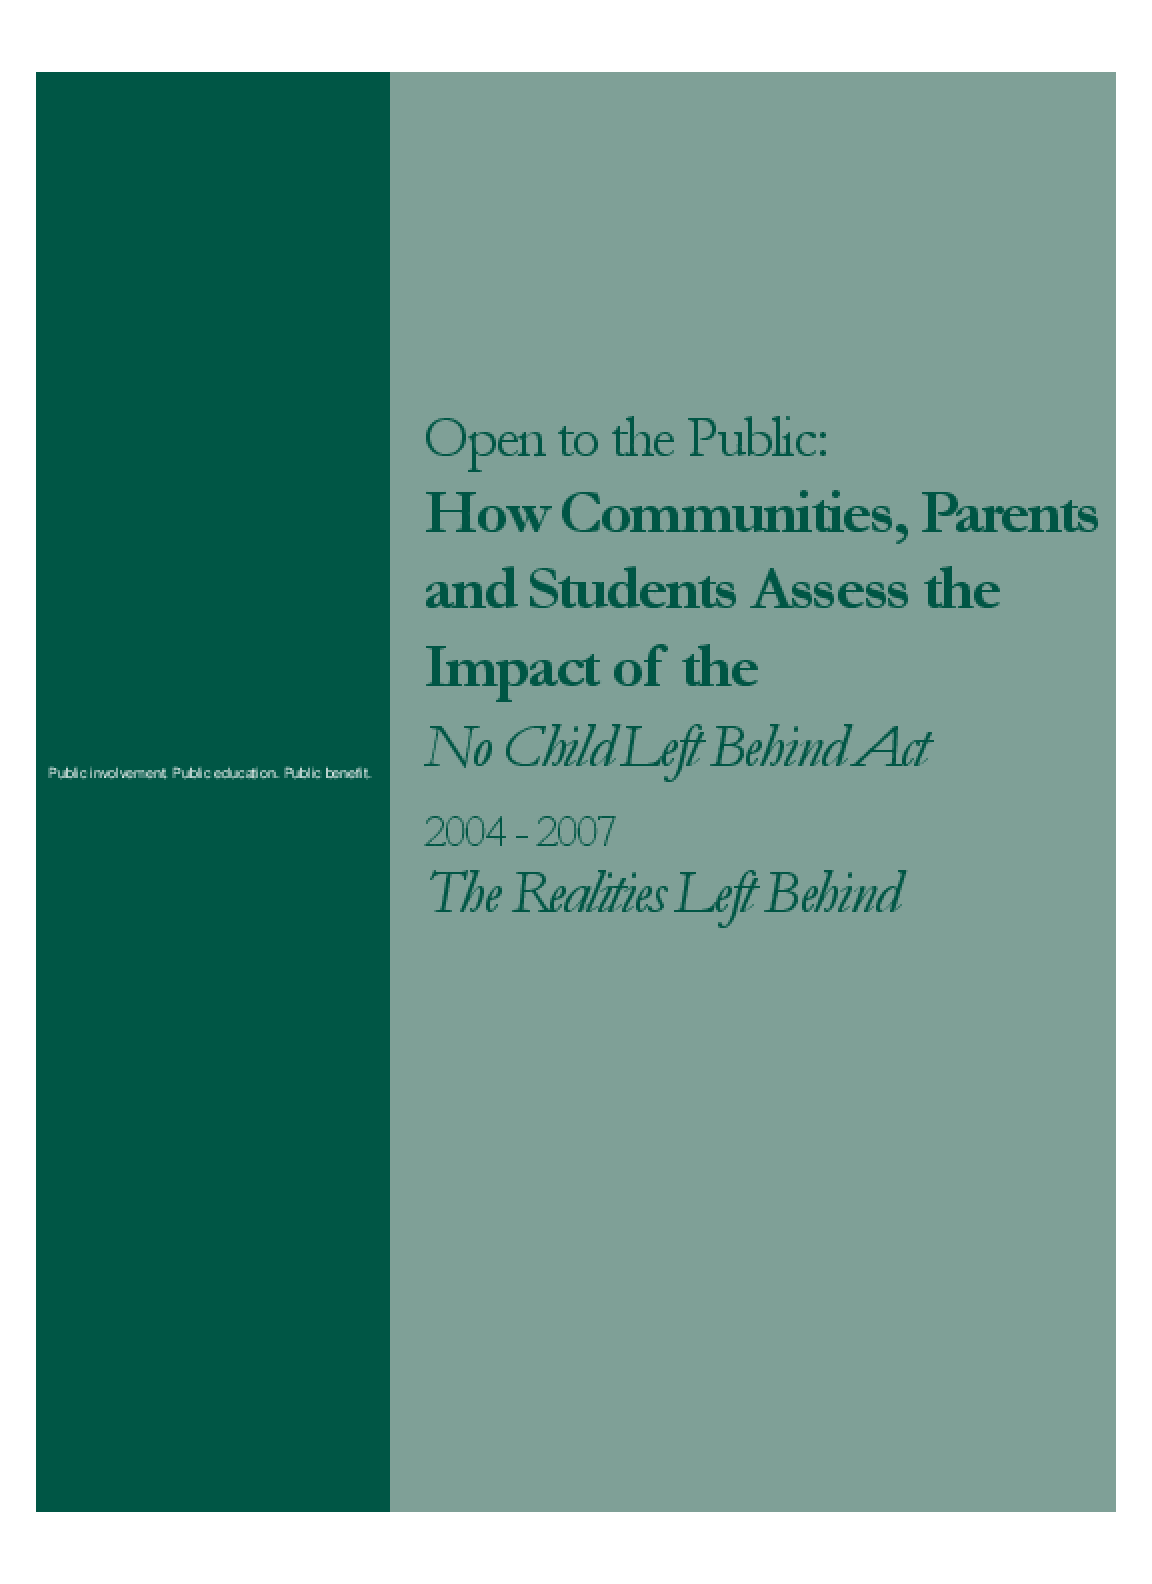 Open to the Public: How Communities, Parents and Students Assess the Impact of the No Child Left Behind Act 2004 - 2007